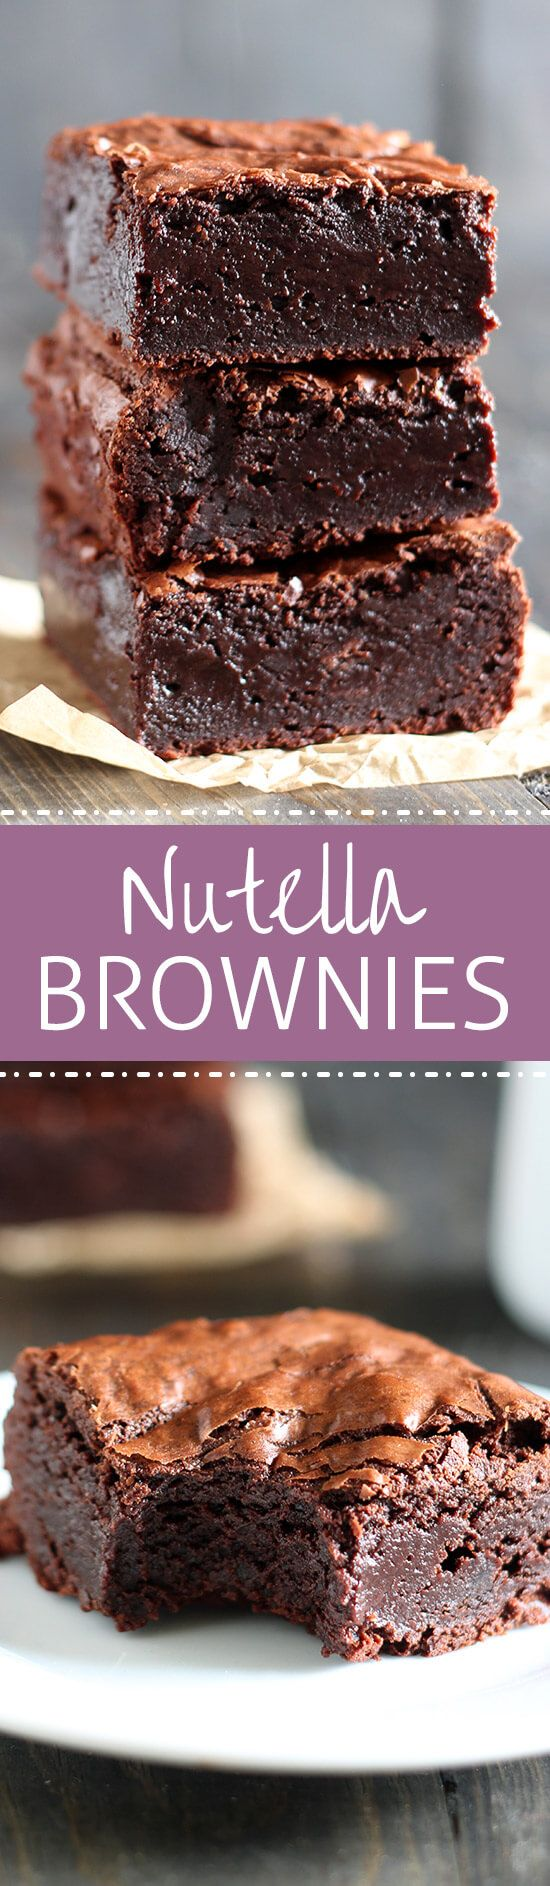 Nutella Brownies - Handle the Heat